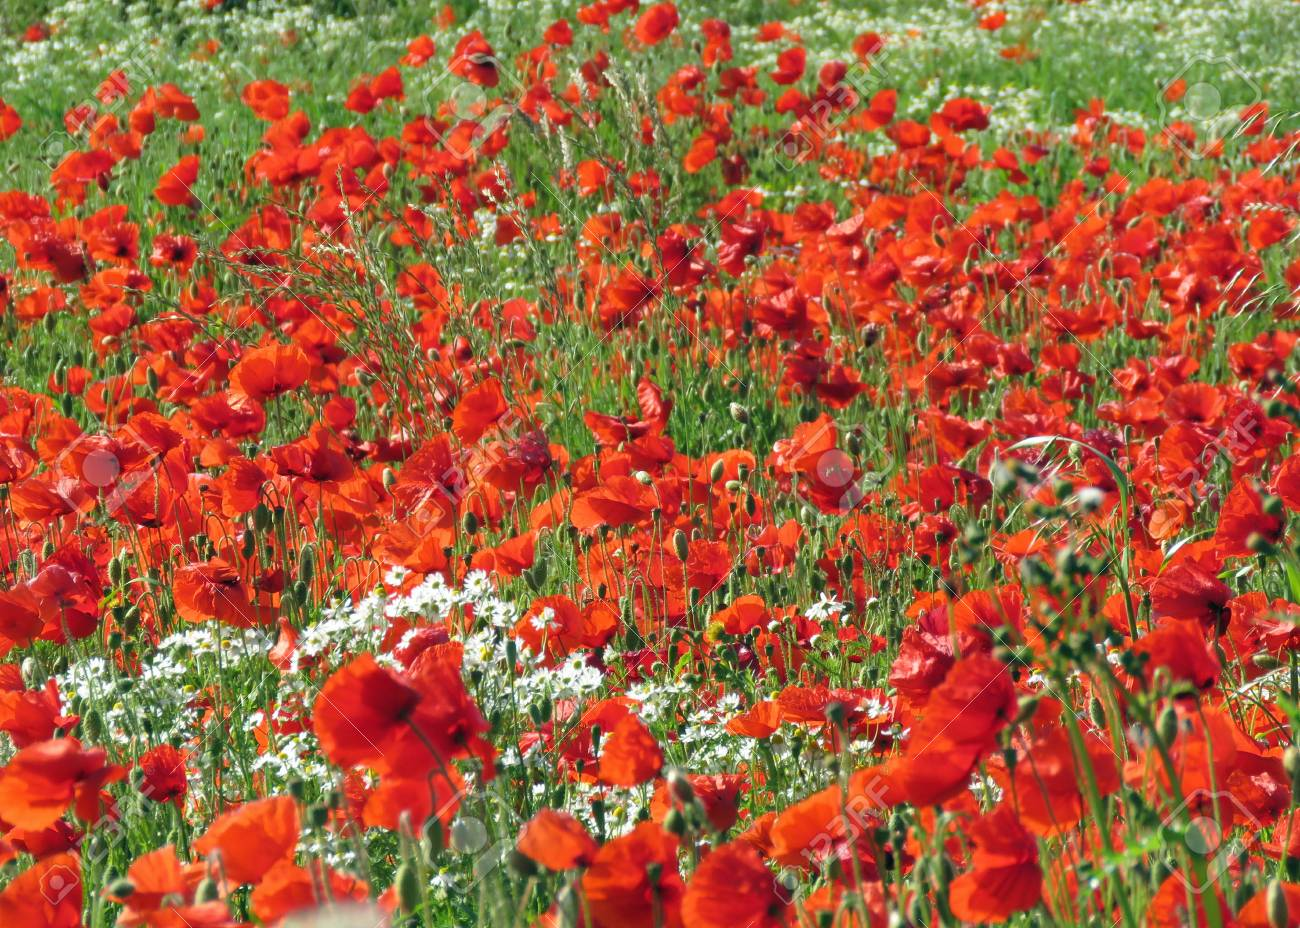 A meadow full of poppies and grasses in rural English countryside Standard-Bild - 81777898